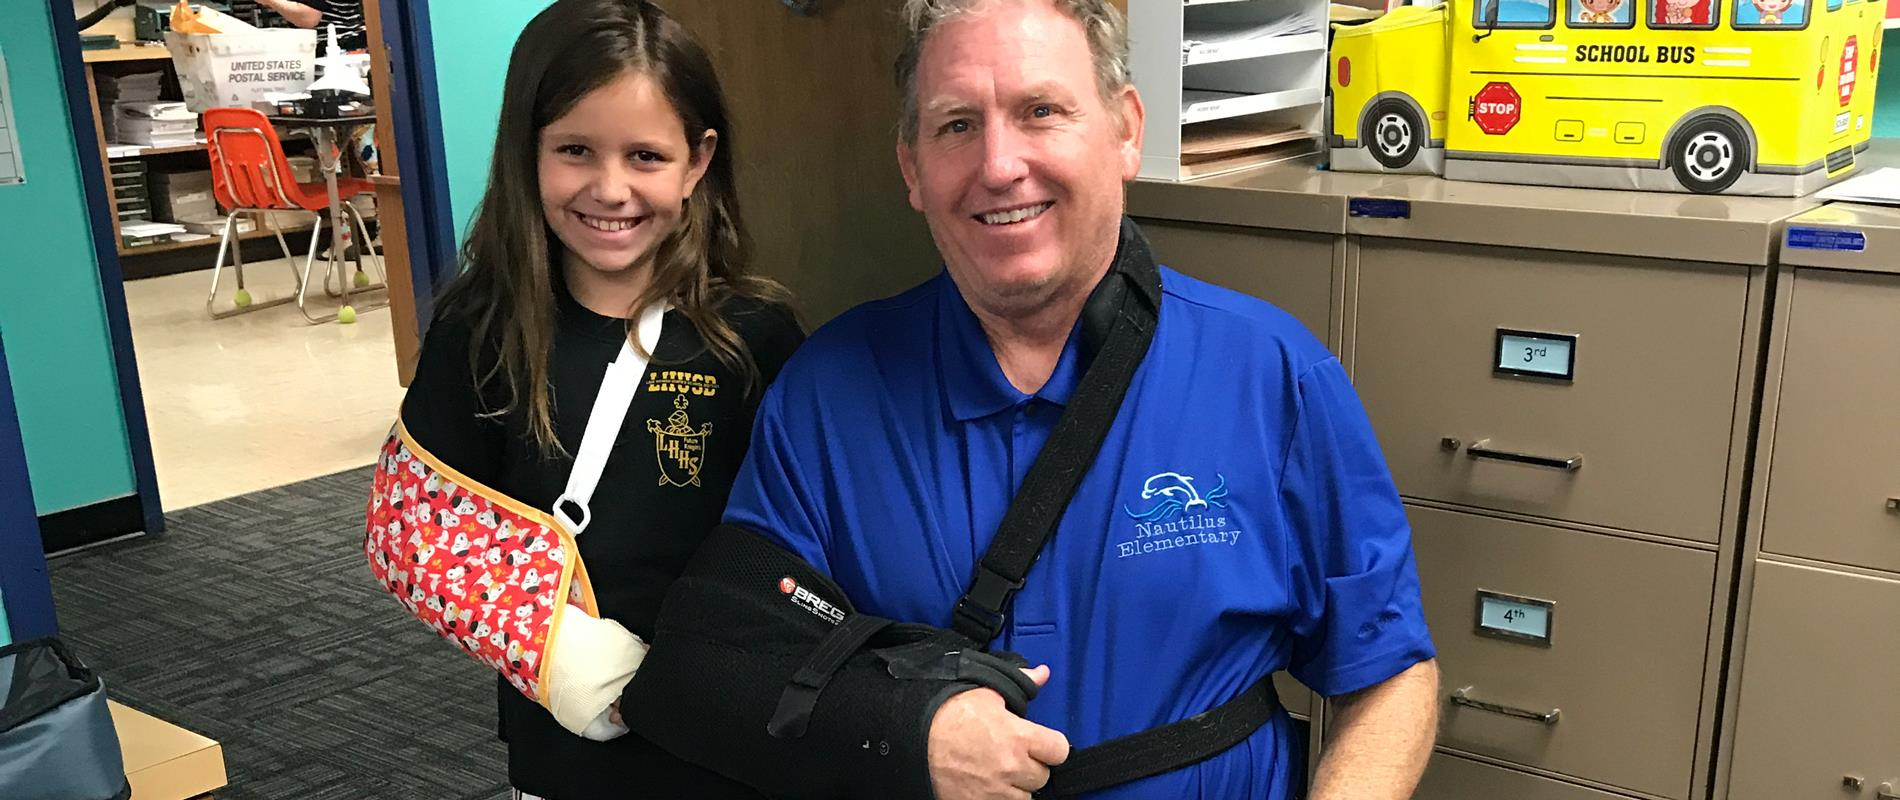 picture of girl and Principal with matching broken arms